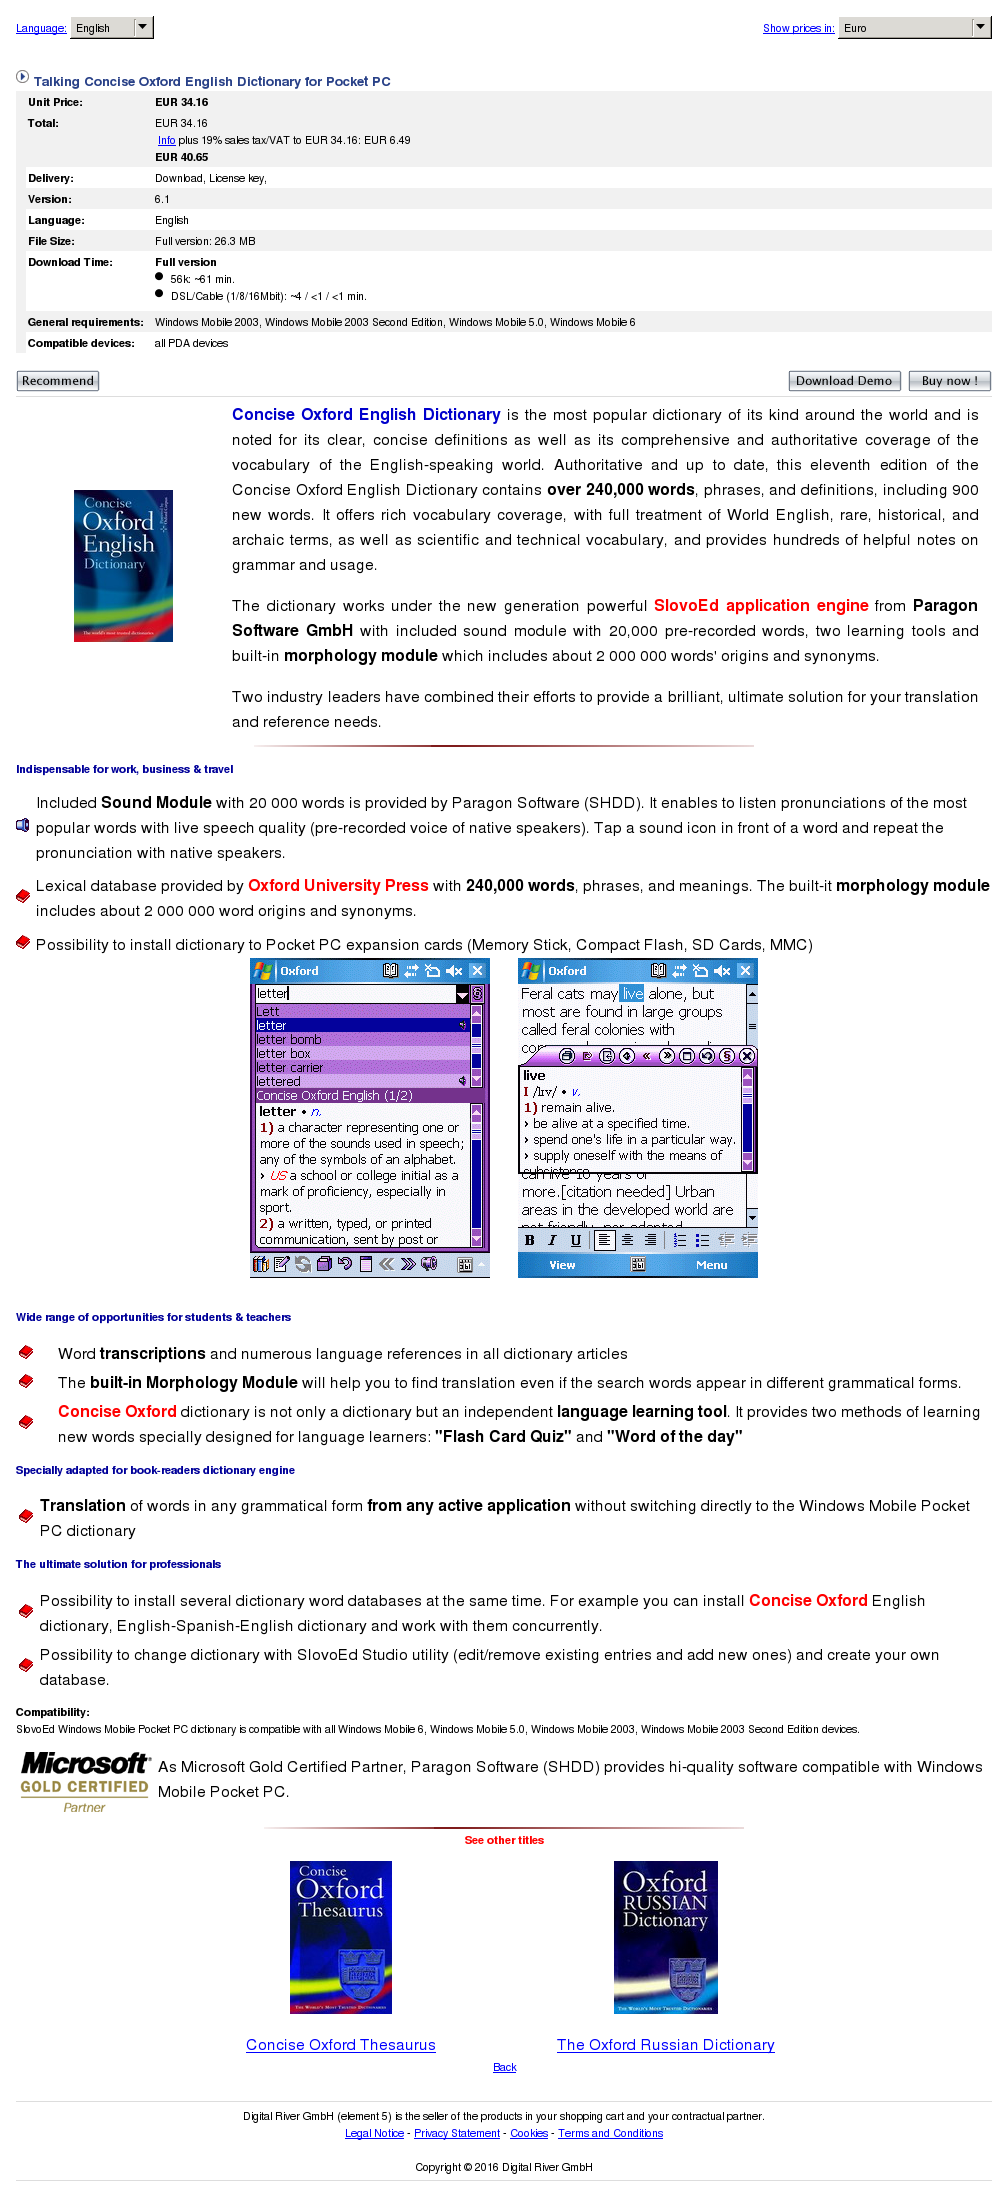 Talking Concise Oxford English Dictionary Pocket Free